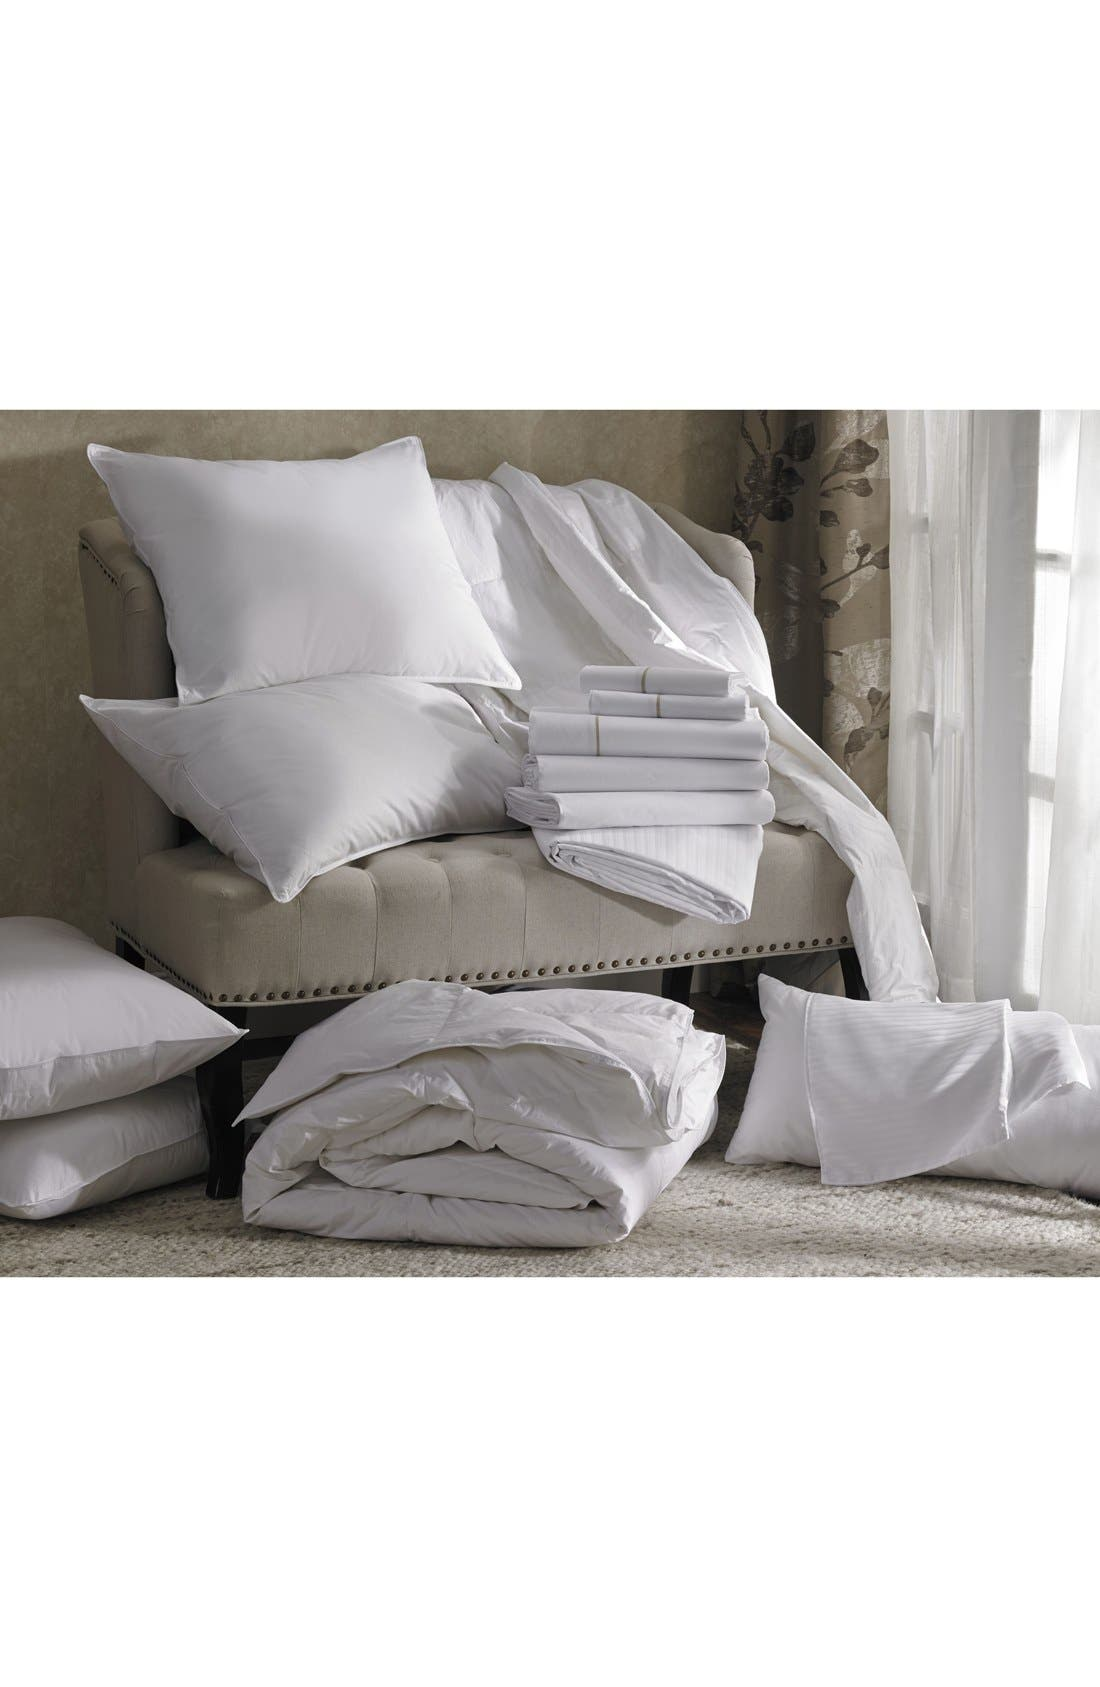 'Ultra Luxe' 600 Thread Count Fitted Sheet,                             Alternate thumbnail 3, color,                             100